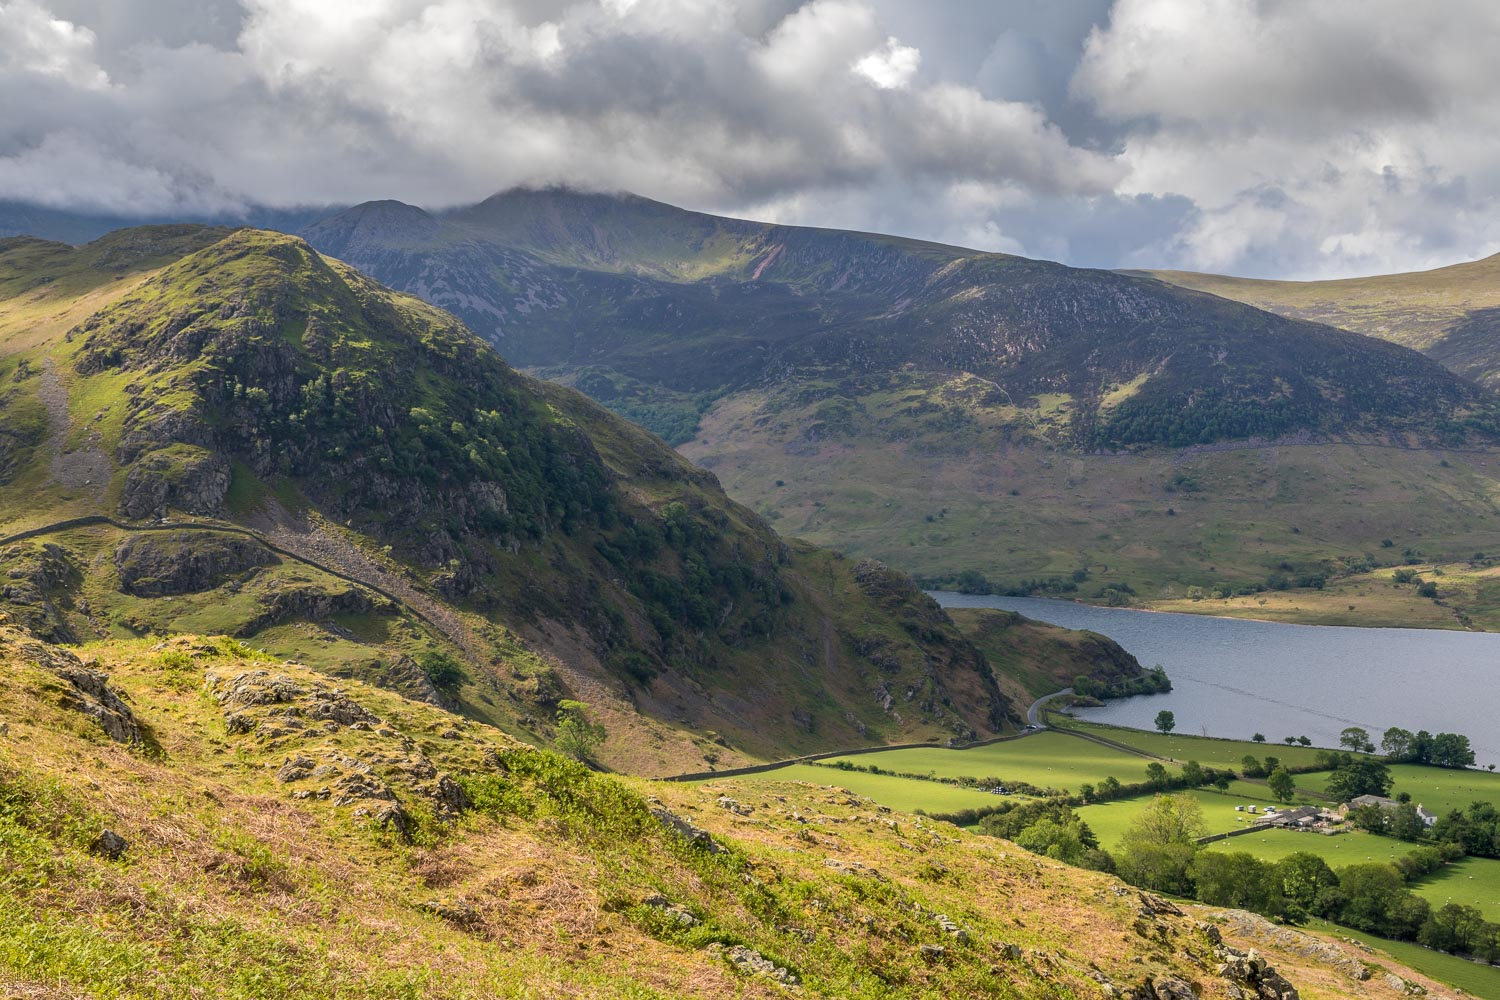 Rannerdale Knotts and Rannerdale